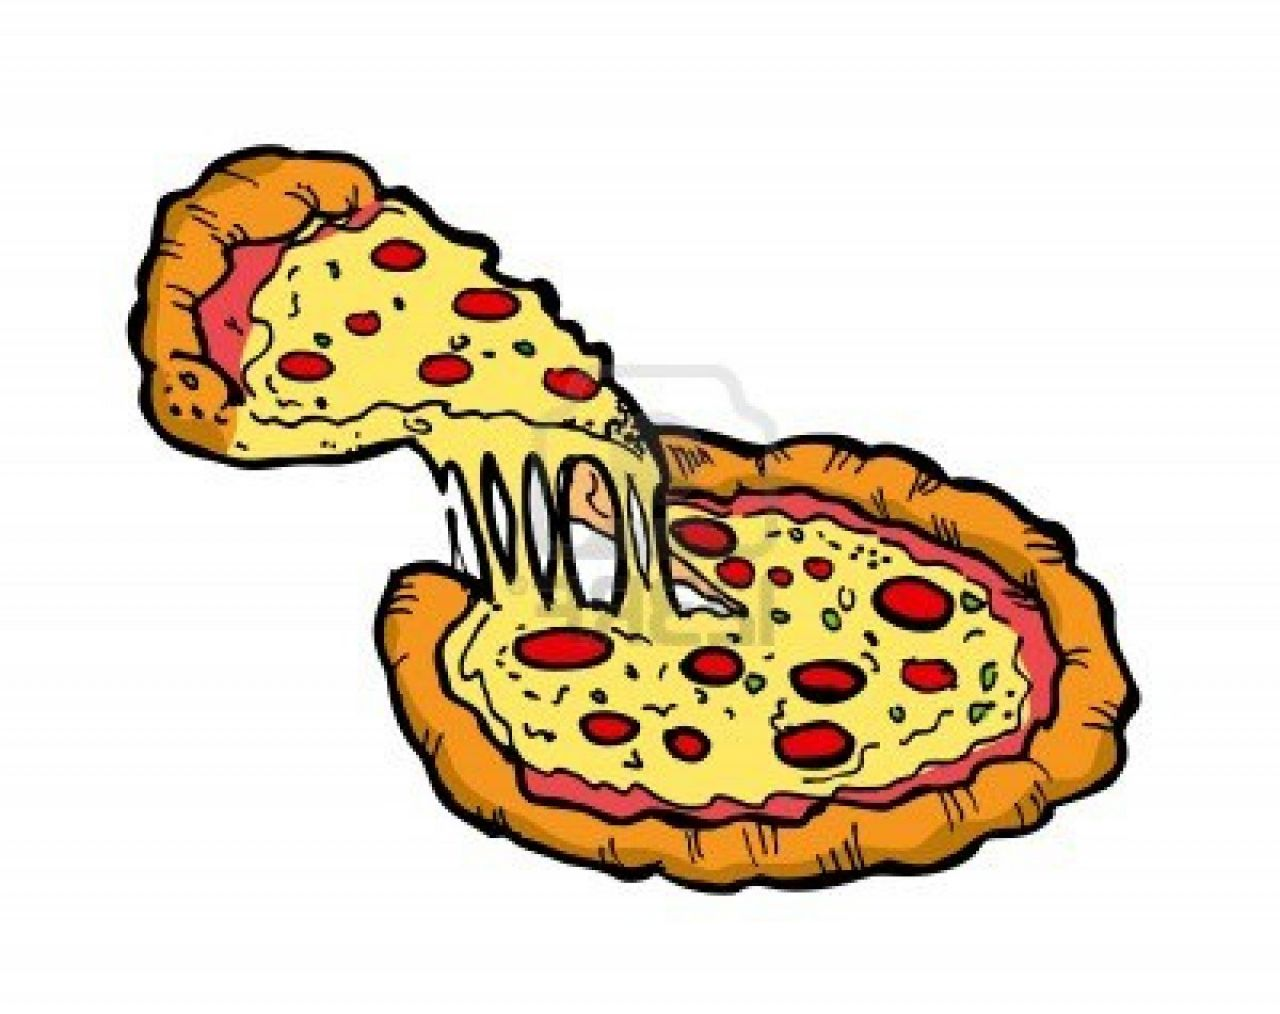 1280x1014 Collection Of Pizza And Pasta Clipart High Quality, Free